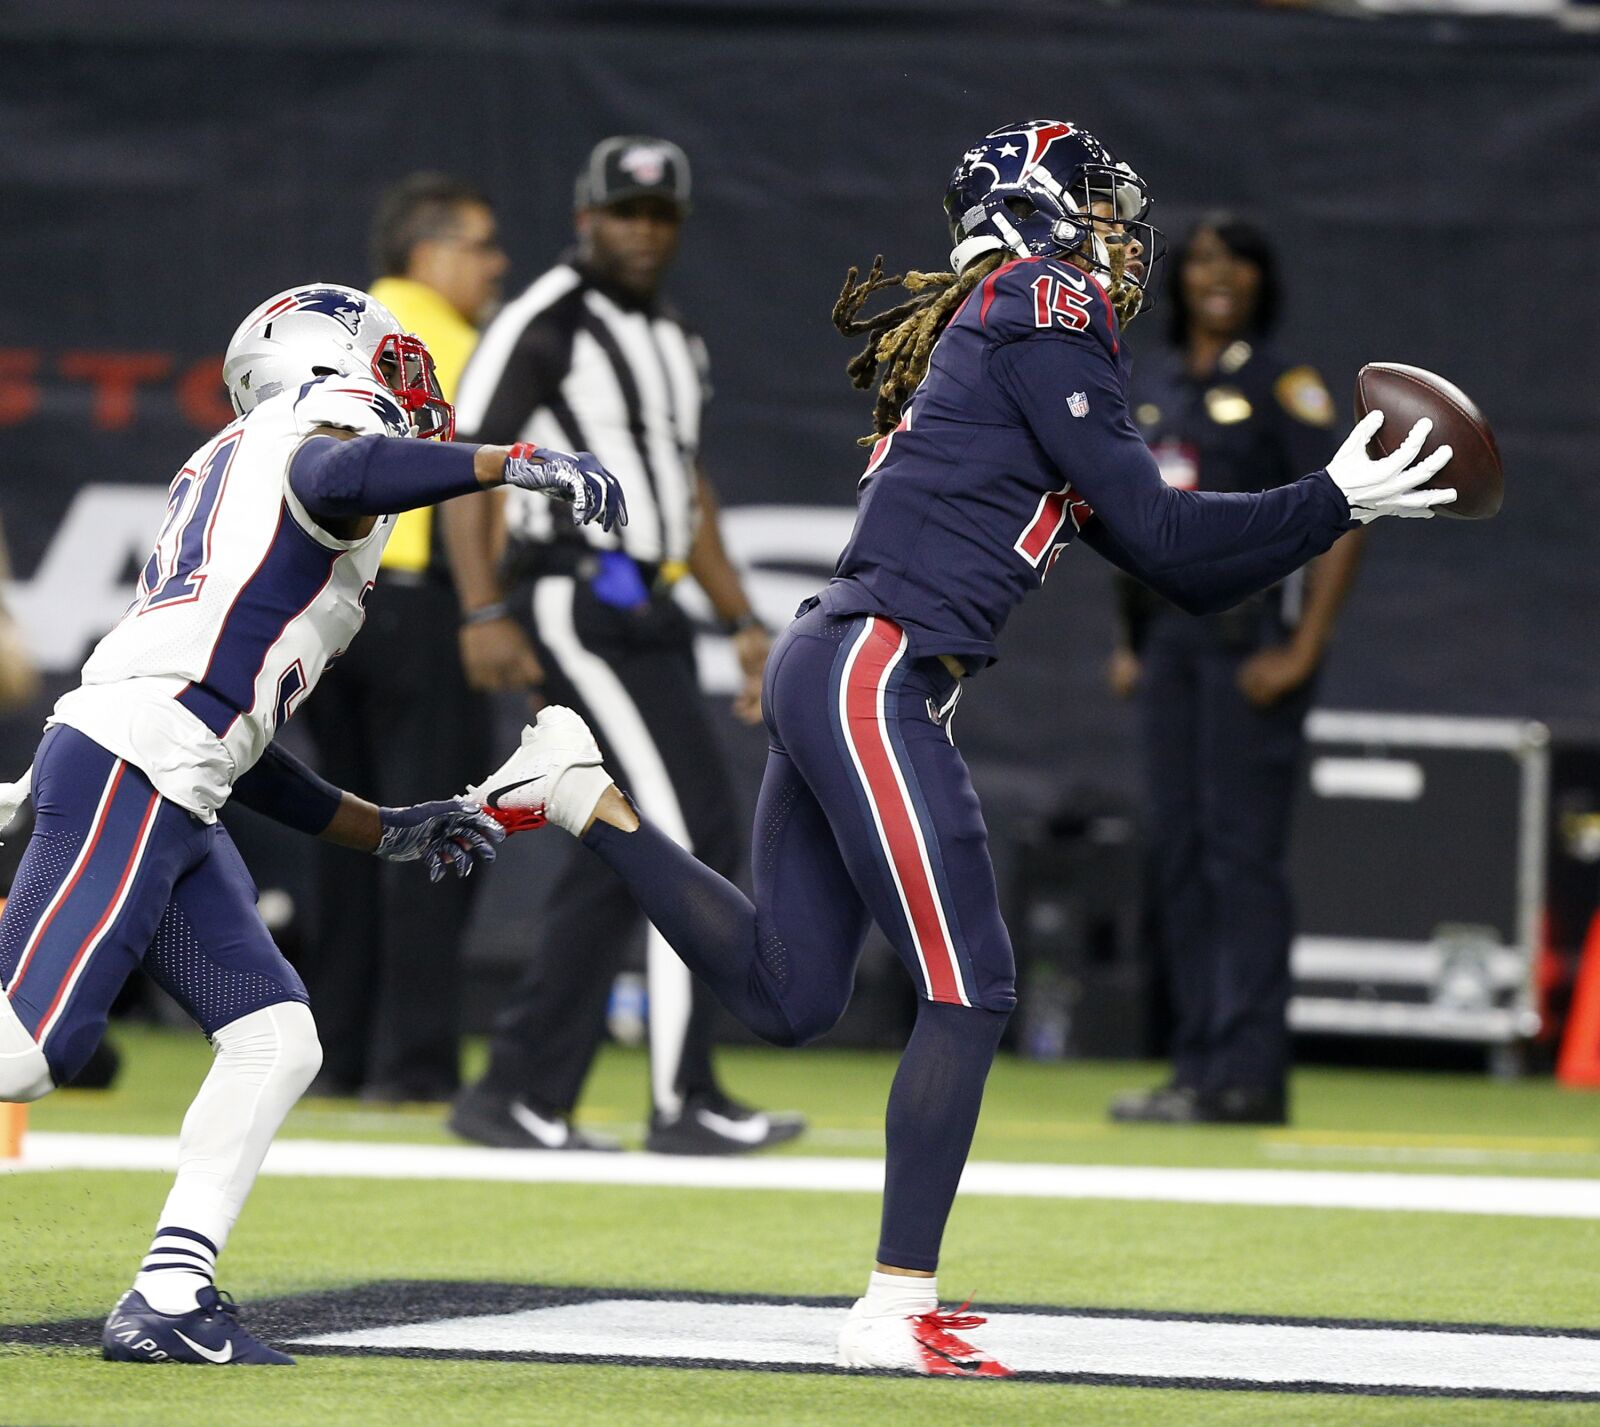 Houston Texans: Will Fuller listed as inactive in Week 14